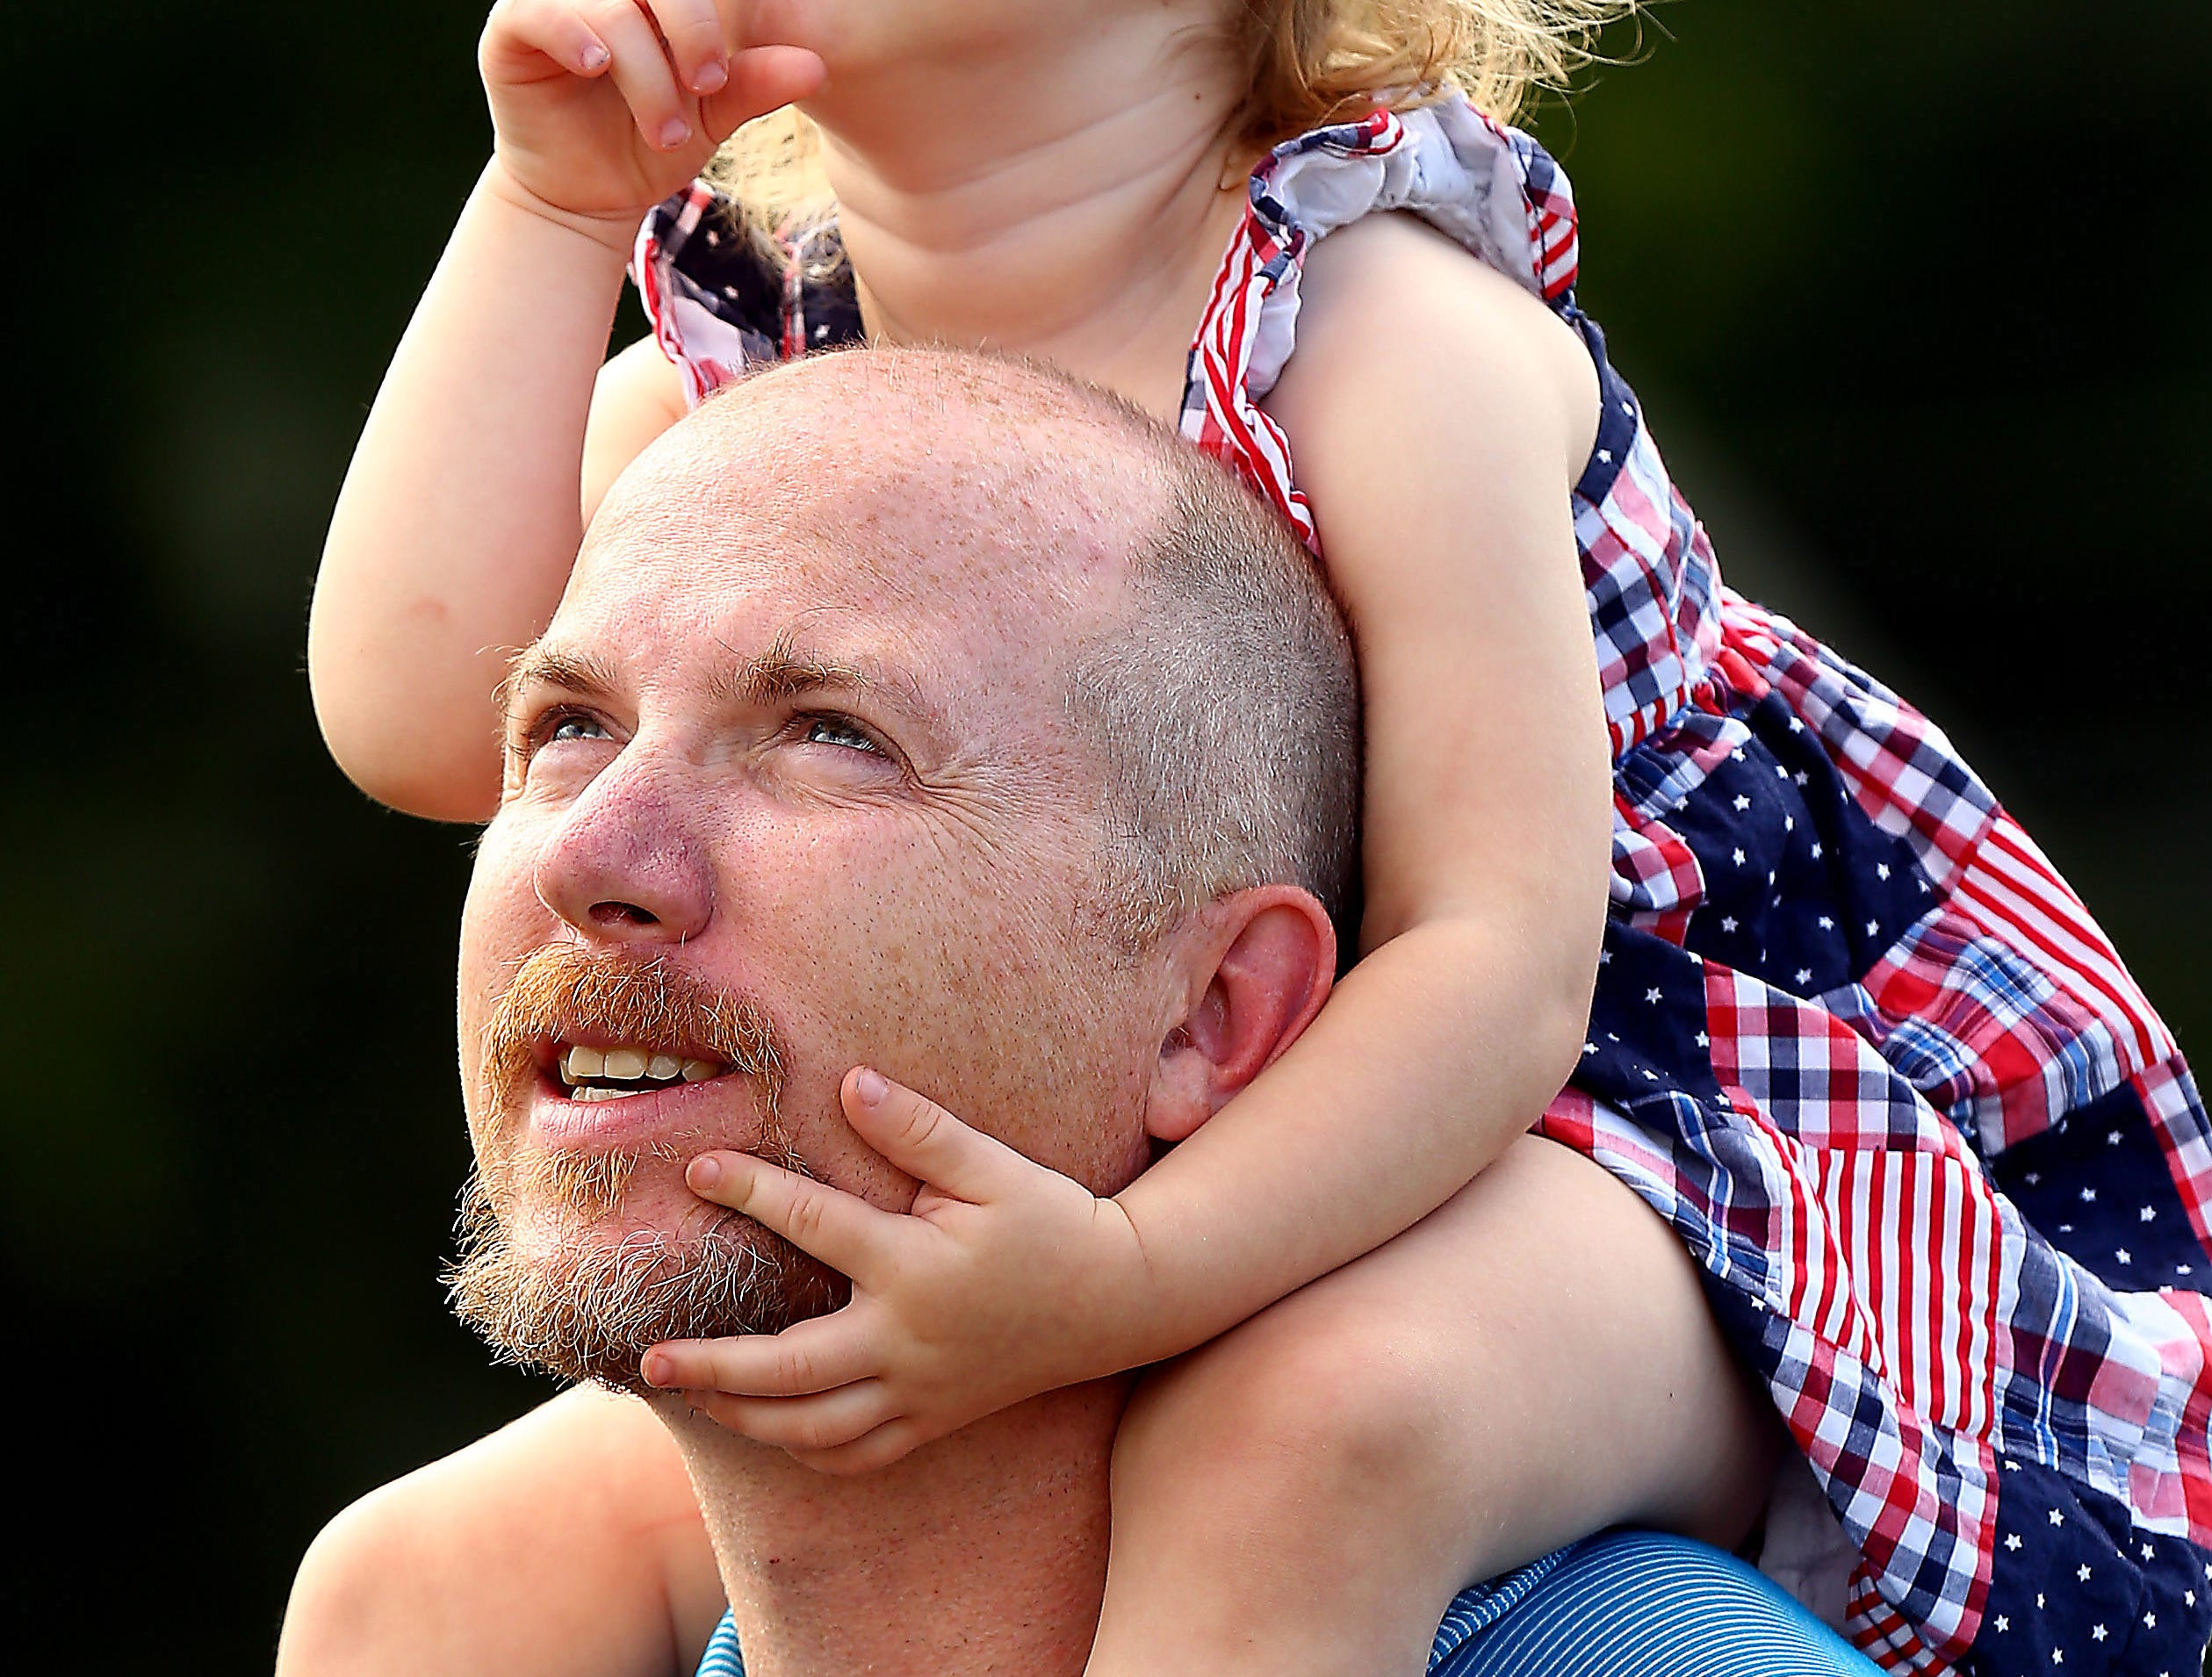 Michael Clear and daughter Meghan, 2, watch as 11-year-old Peter Clear, a fifth grade student from John Hill School in Boonton goes for a ride. Peter won the Quick Chek Balloon Festival's annual patriotic essay contest getting a chance for a tethered balloon ride at Boonton High School as the contest winner. June 20, 2018. Boonton, NJ